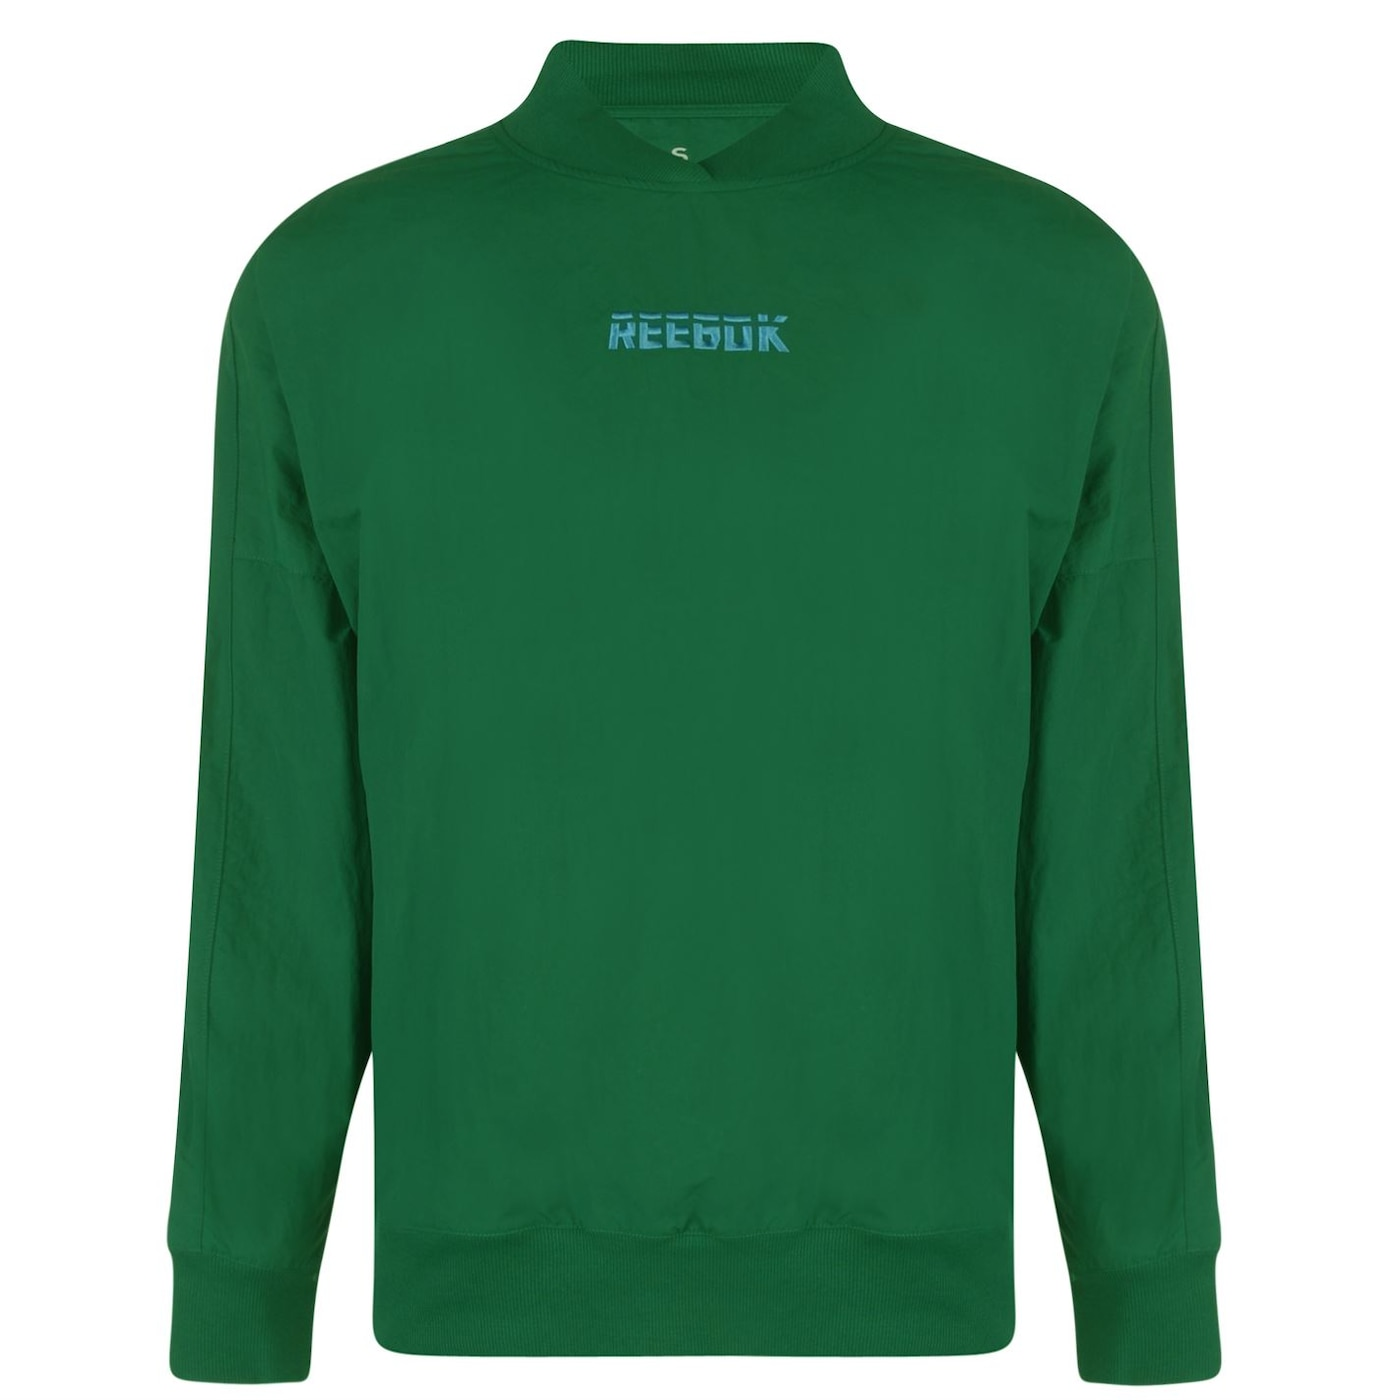 Reebok Meet You There Woven Pull Over Ladies